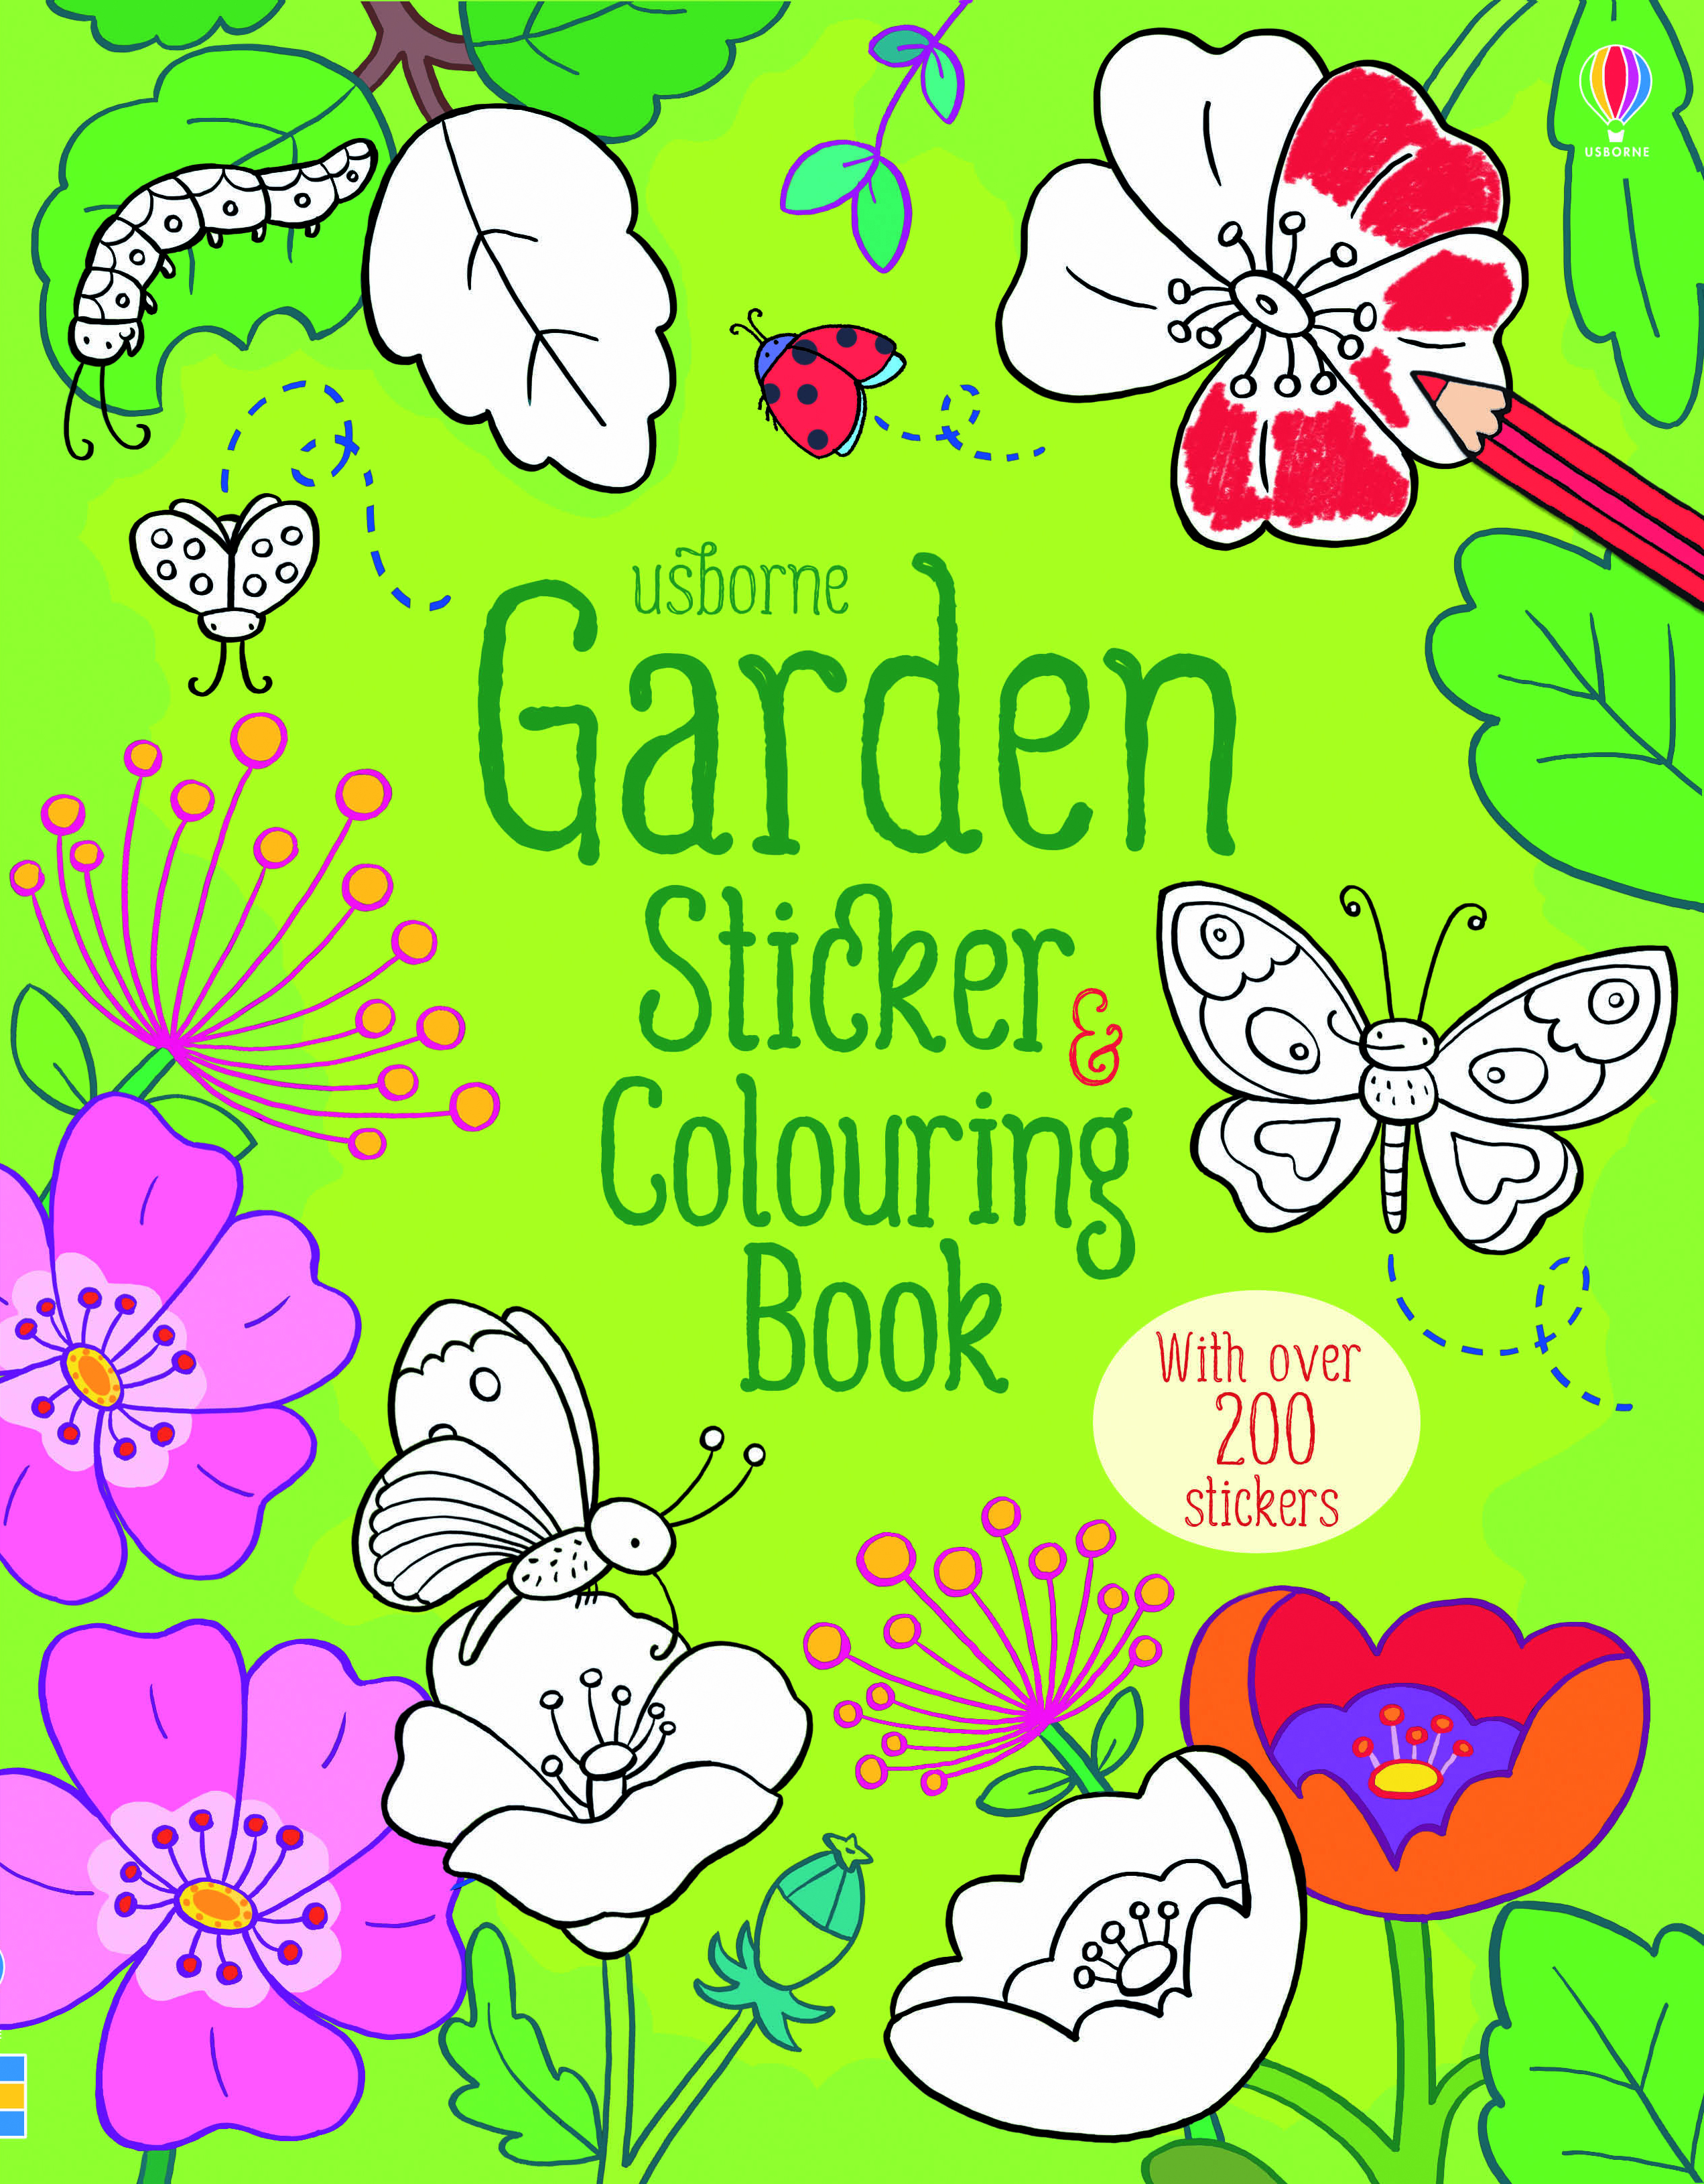 Nice Coloring Book Wallpaper Huge Coloring Book App Rectangular Bulk Coloring Books Animal Coloring Book Youthful Animal Coloring Books RedBig Coloring Books Garden Sticker And Colouring Book\u201d At Usborne Children\u0027s Books